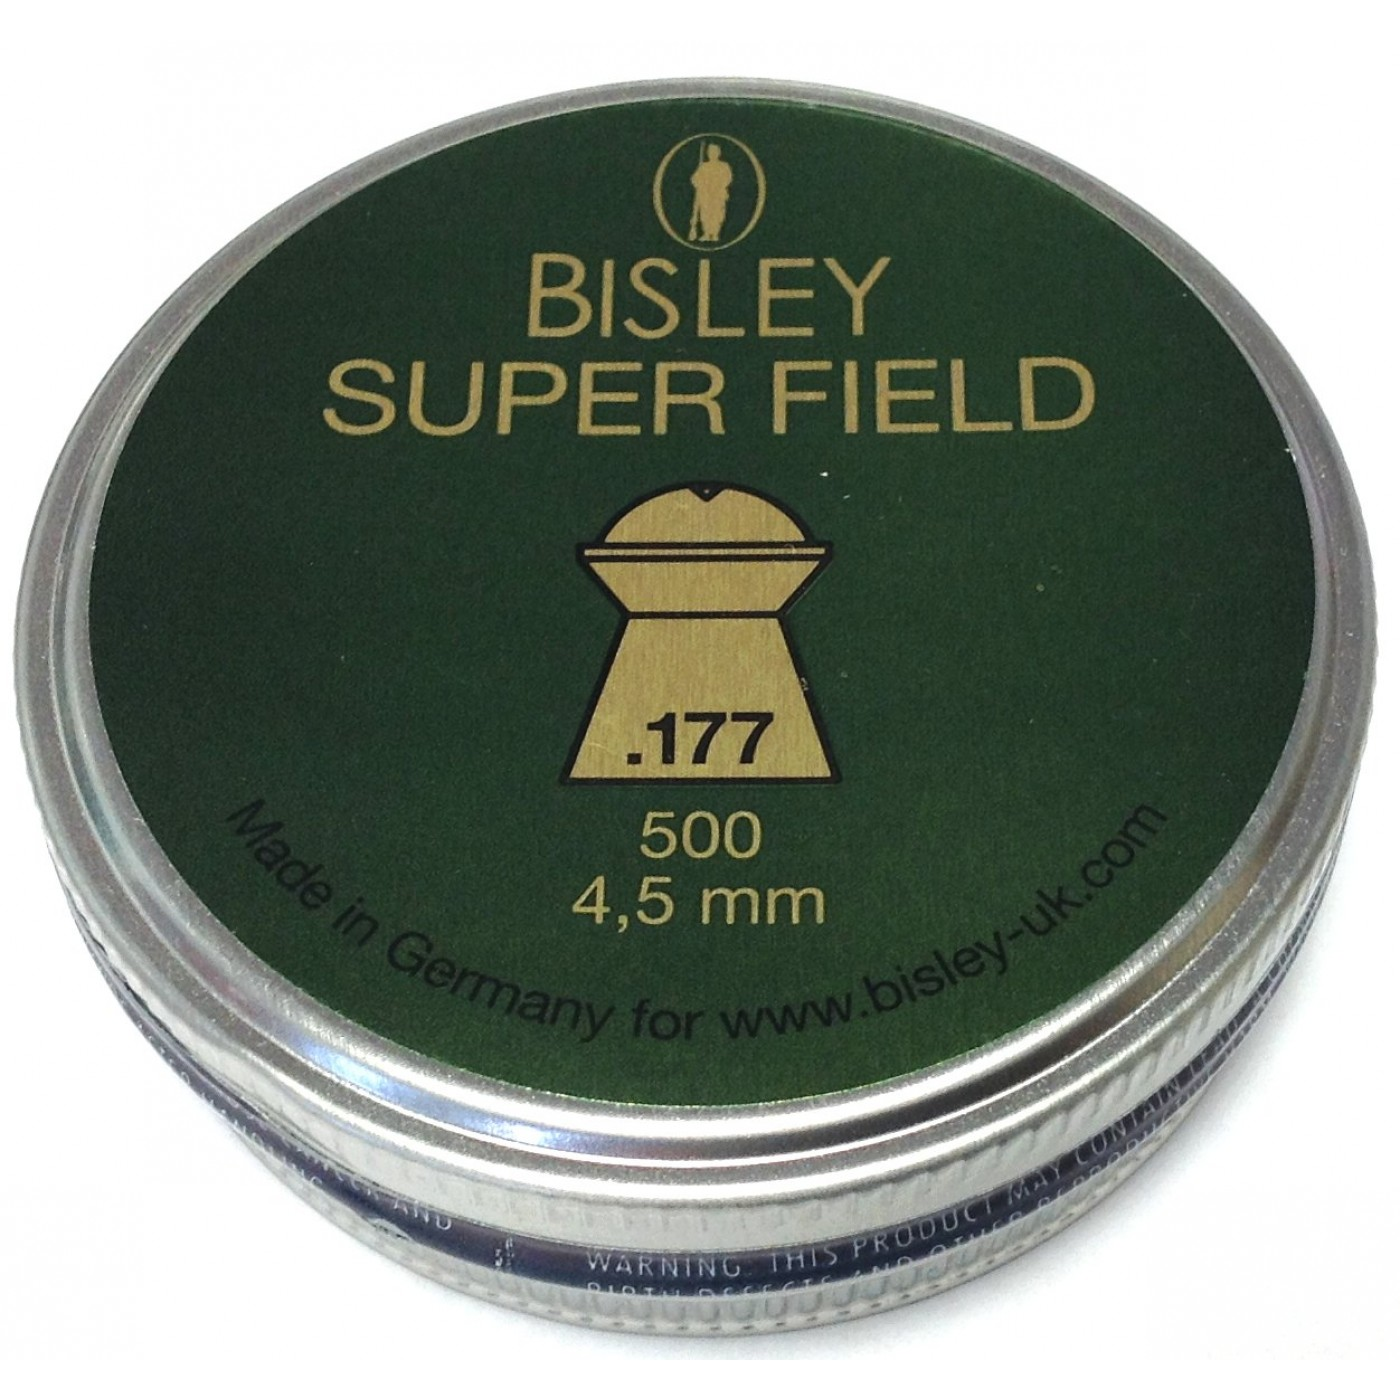 Bisley Super Field .177 4.5 - 8.64gr